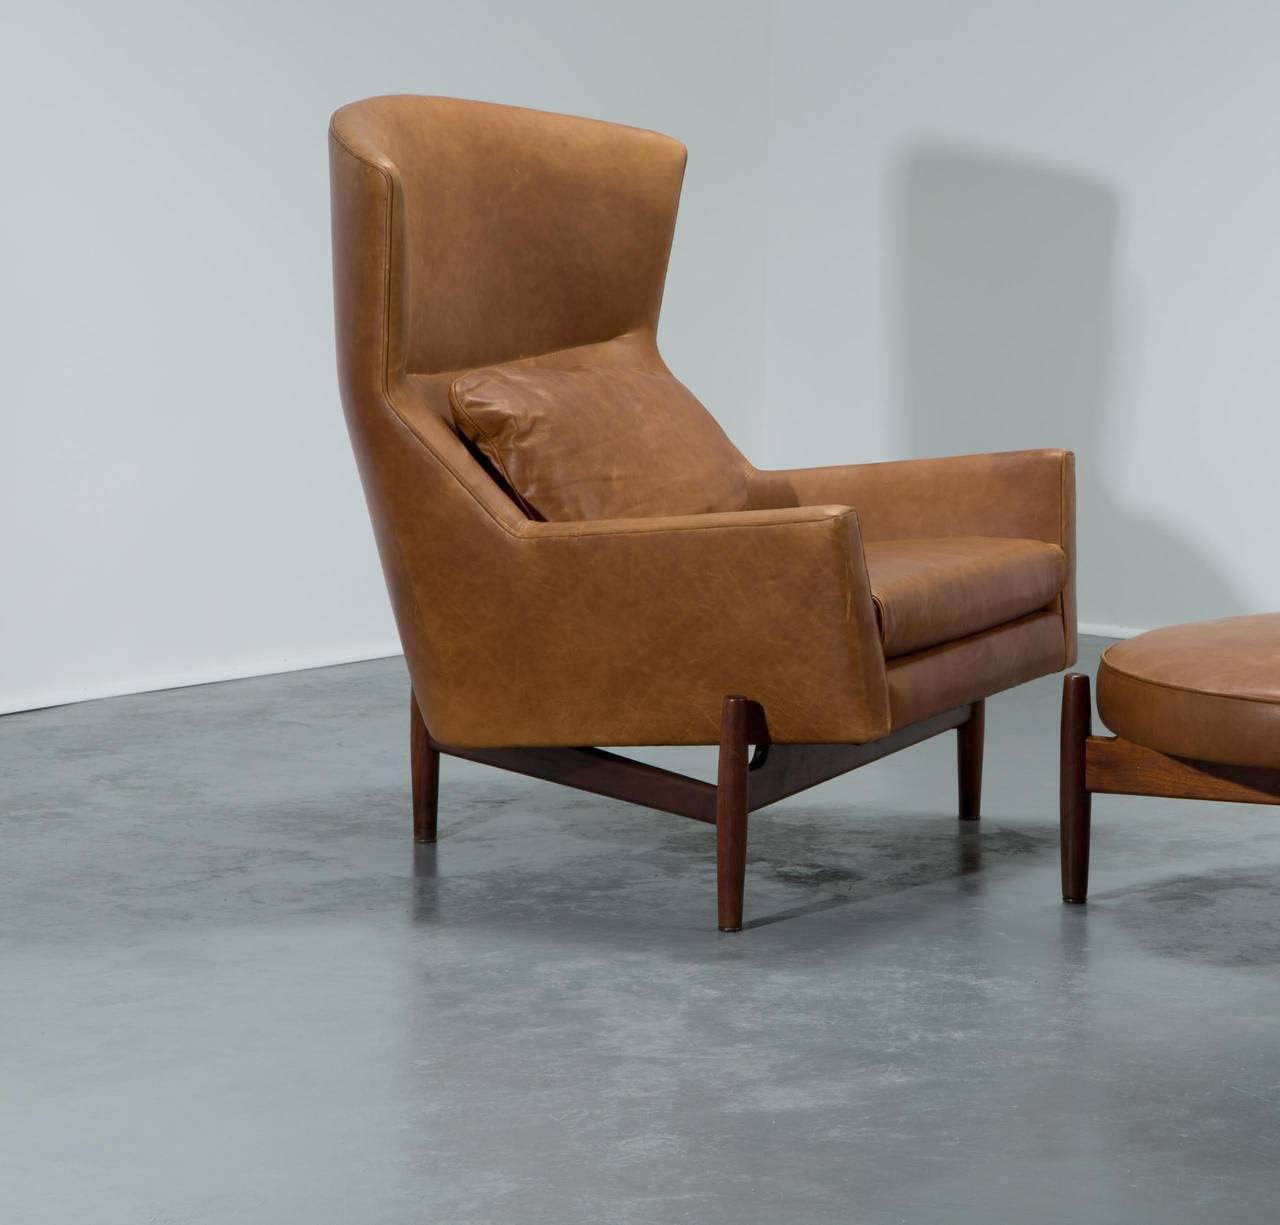 Ordinaire Jens Risom Lounge Chair And Ottoman For Sale 1